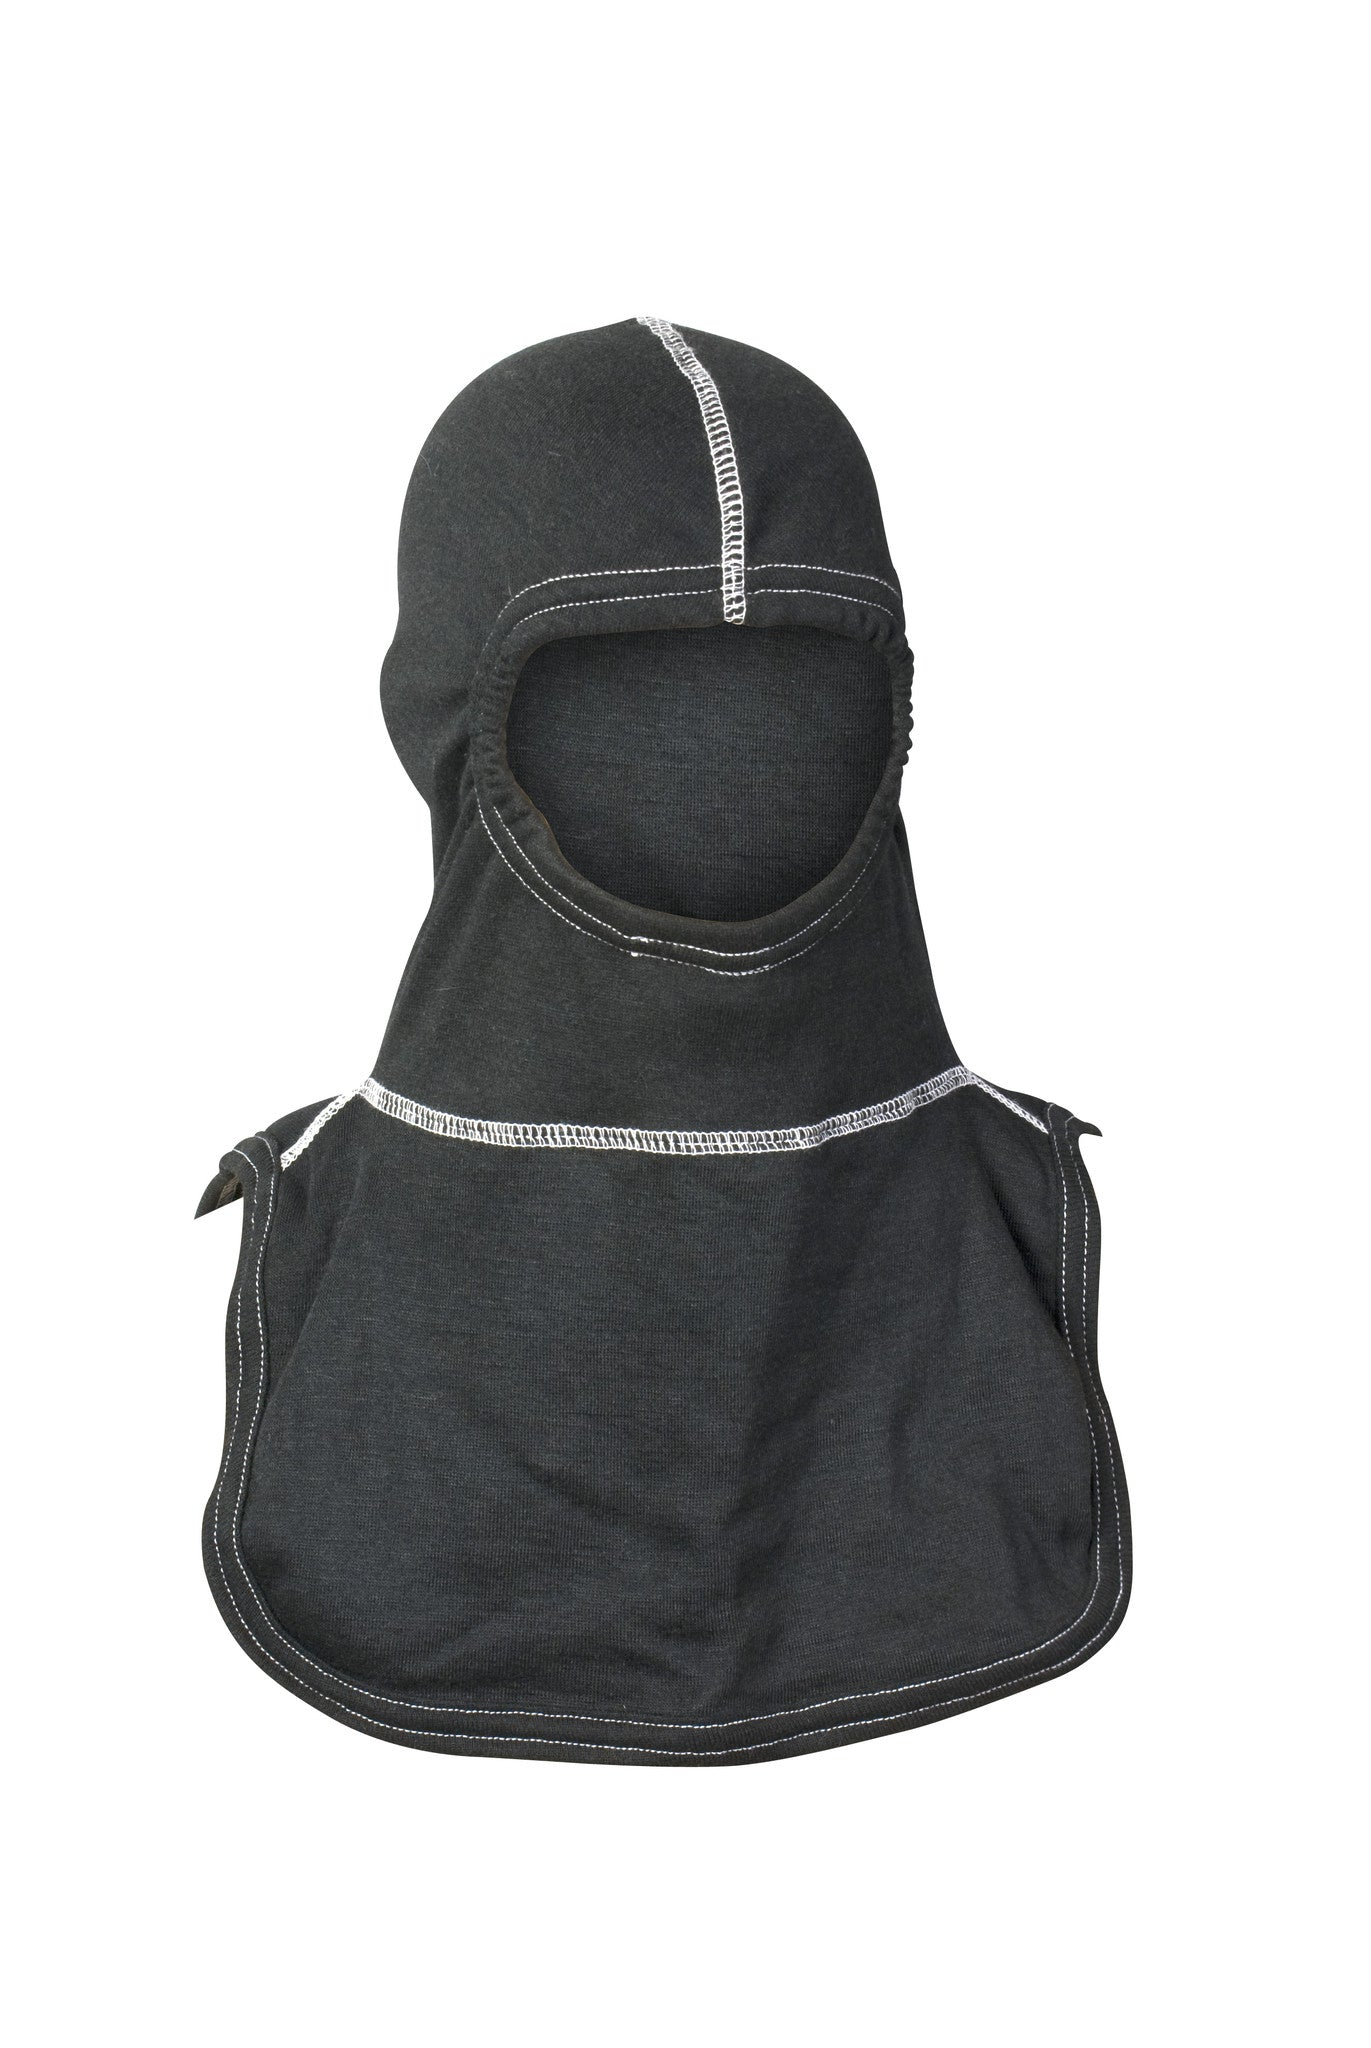 Majestic Fire Apparel: PAC II Ultra C6 Firefighting Hood